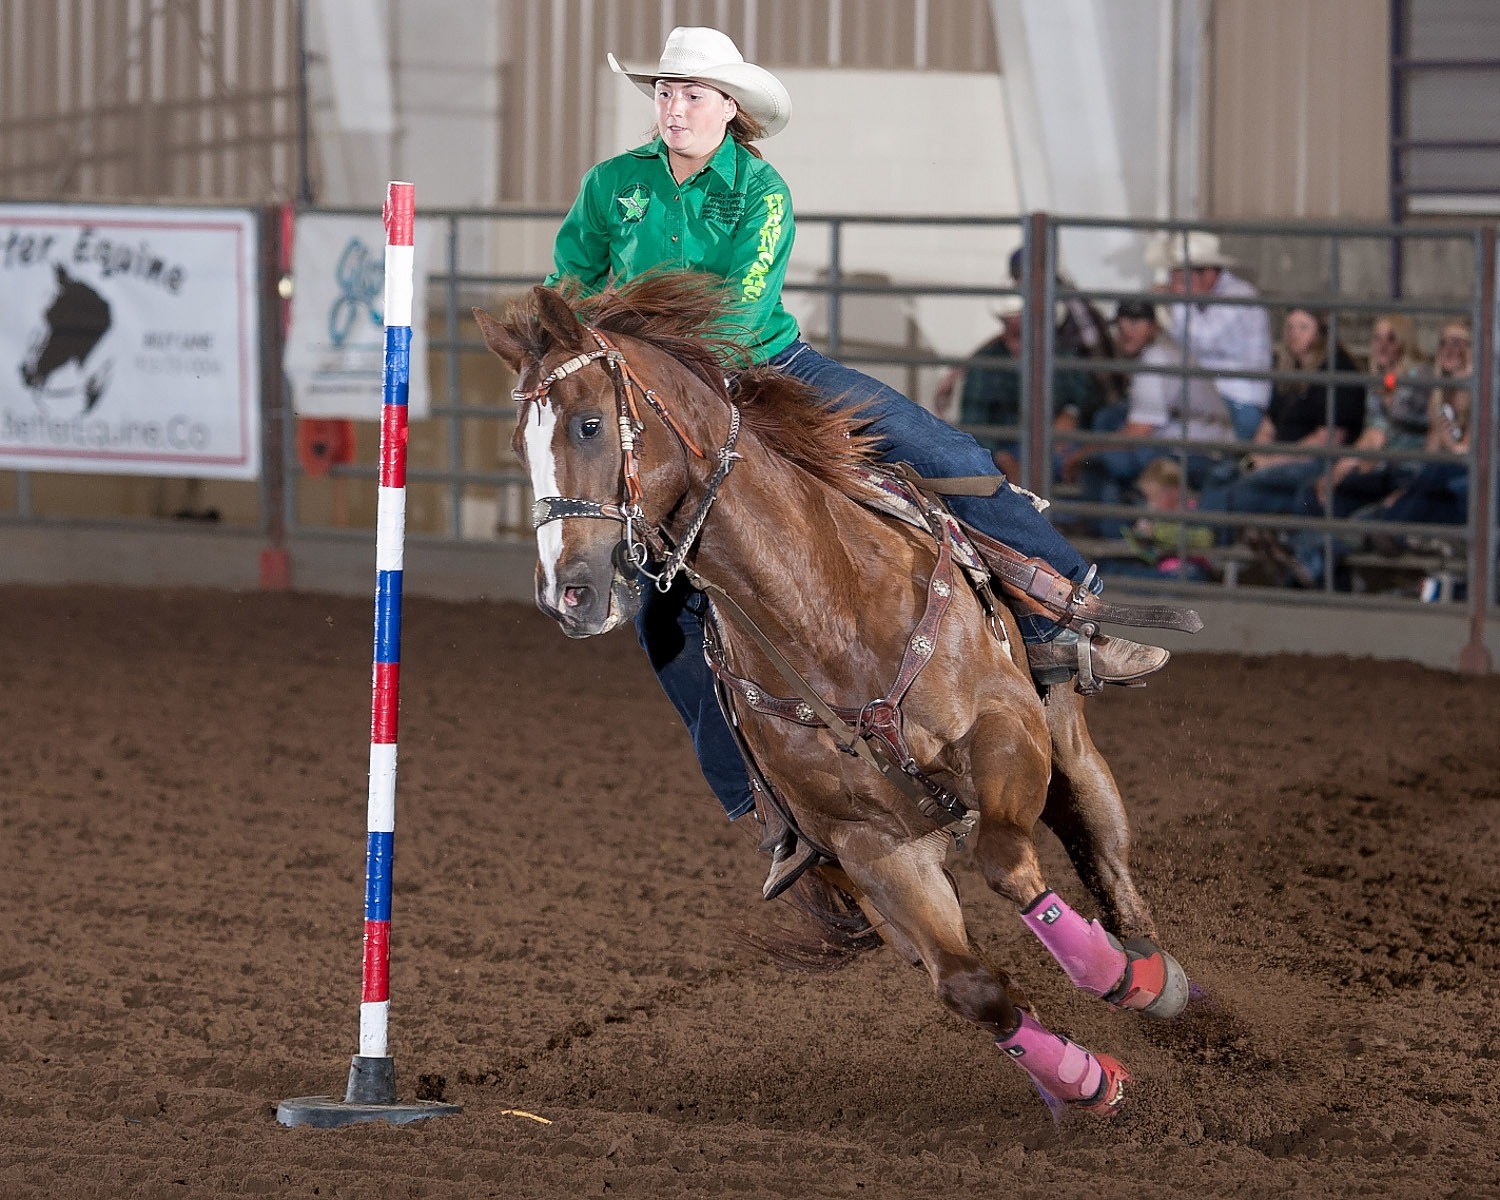 Shelby Whiting, Paola, was the yearend champion in pole bending following the Kansas High School Rodeo Finals at Topeka. (Photo courtesy Kent Kerschner, www.fotocowboy.com, kent@fotocowboy.com.)